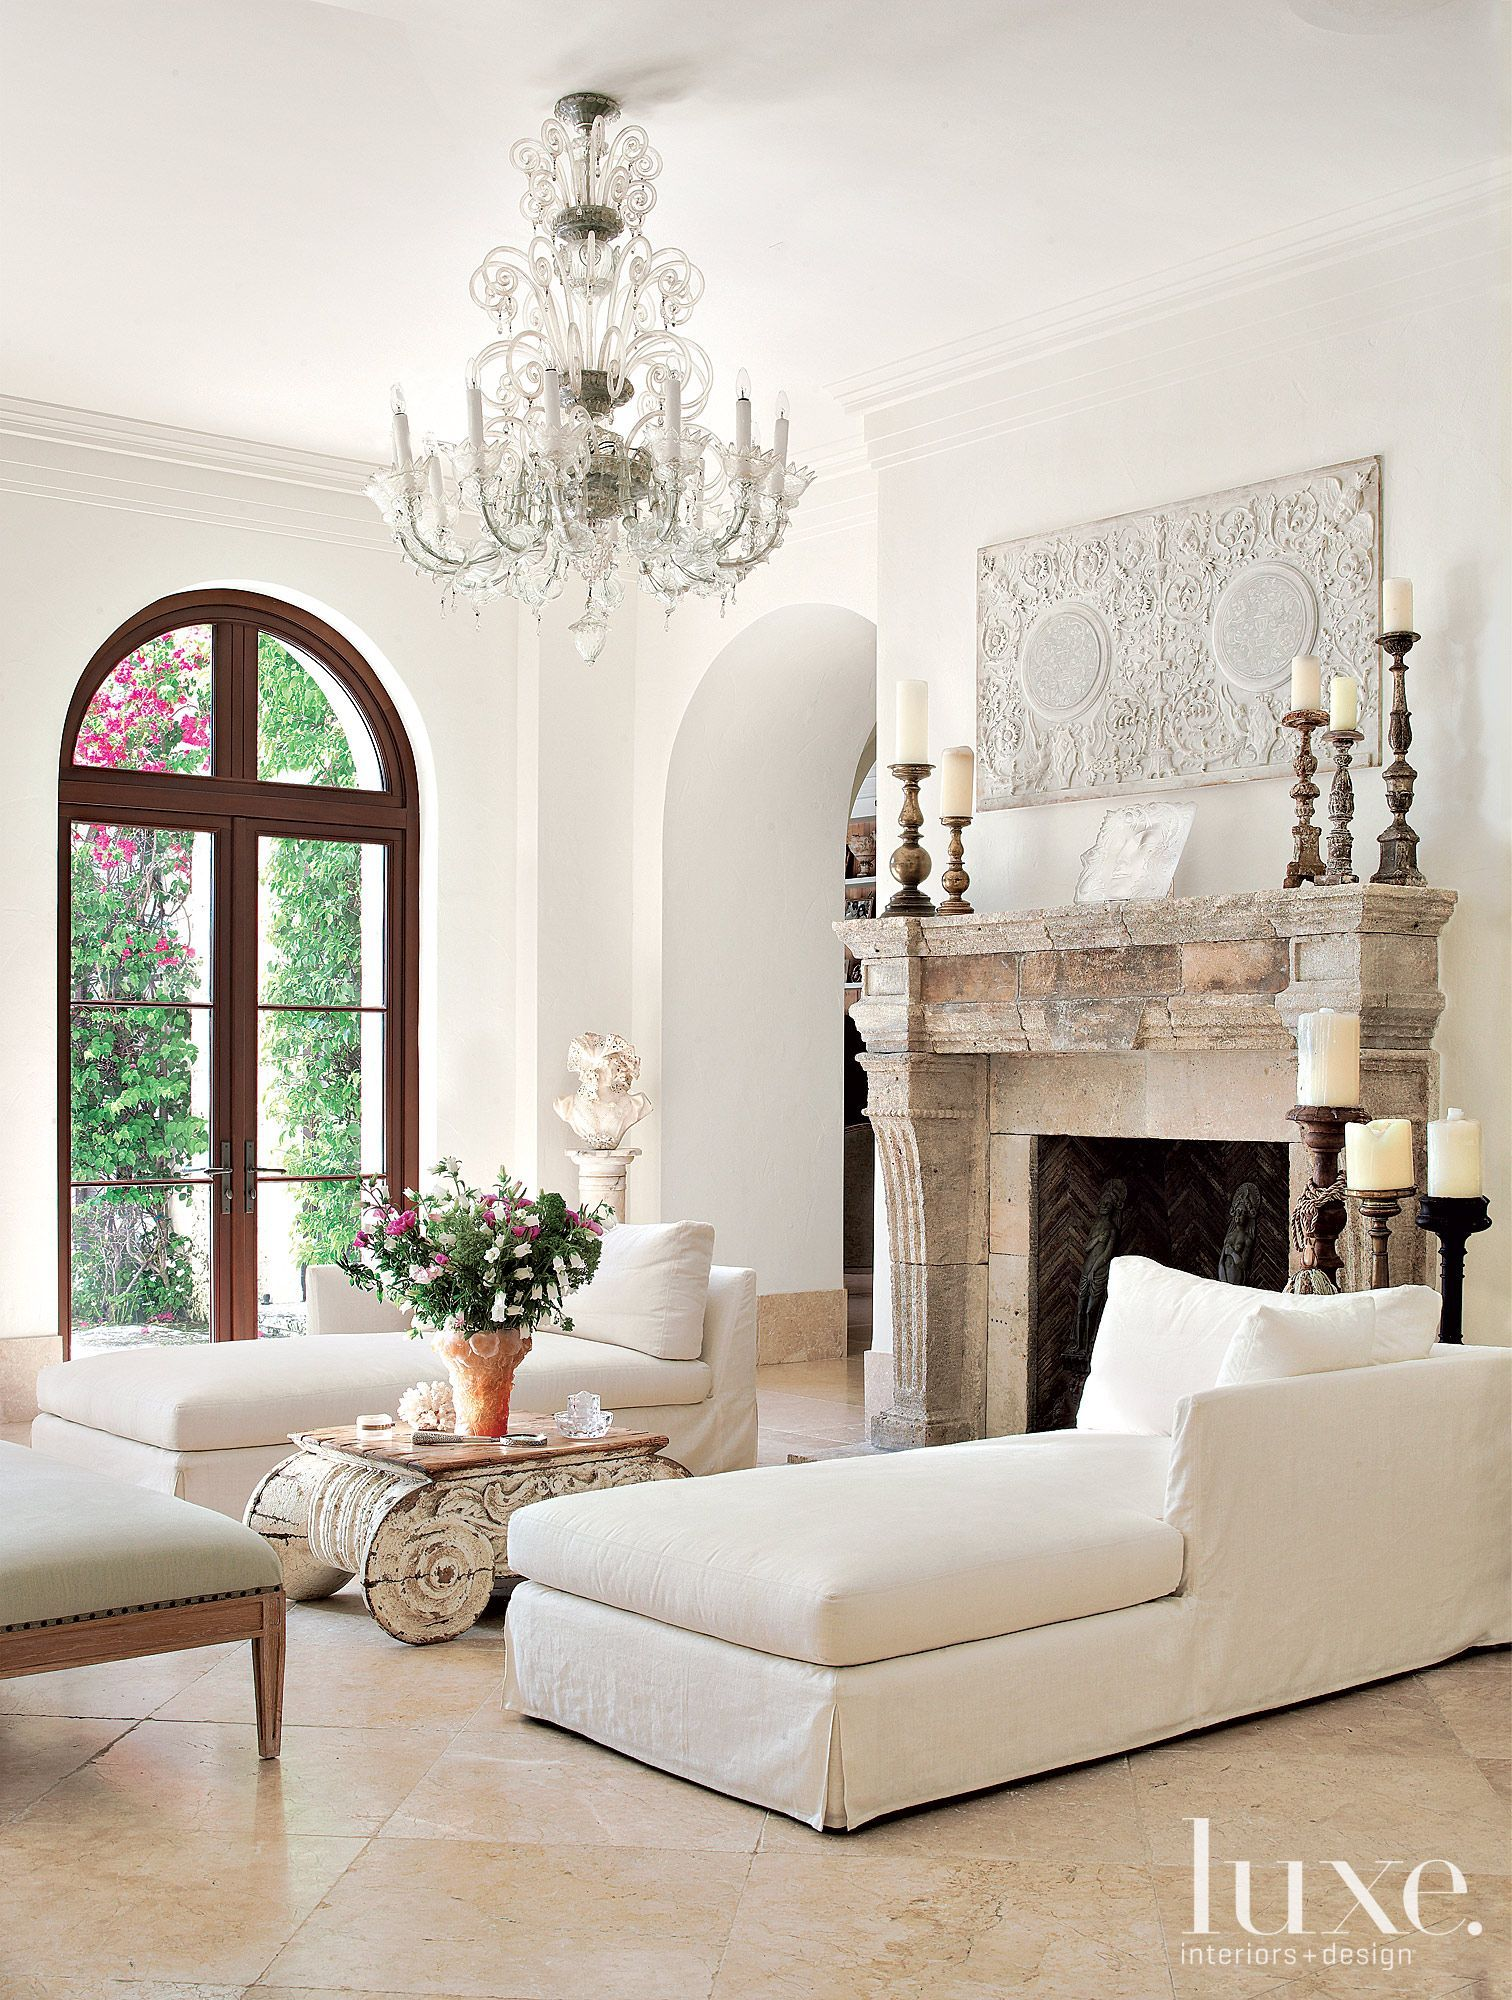 Photo of A Mediterranean-Revival Home in Miami Beach | Luxe Interiors + Design